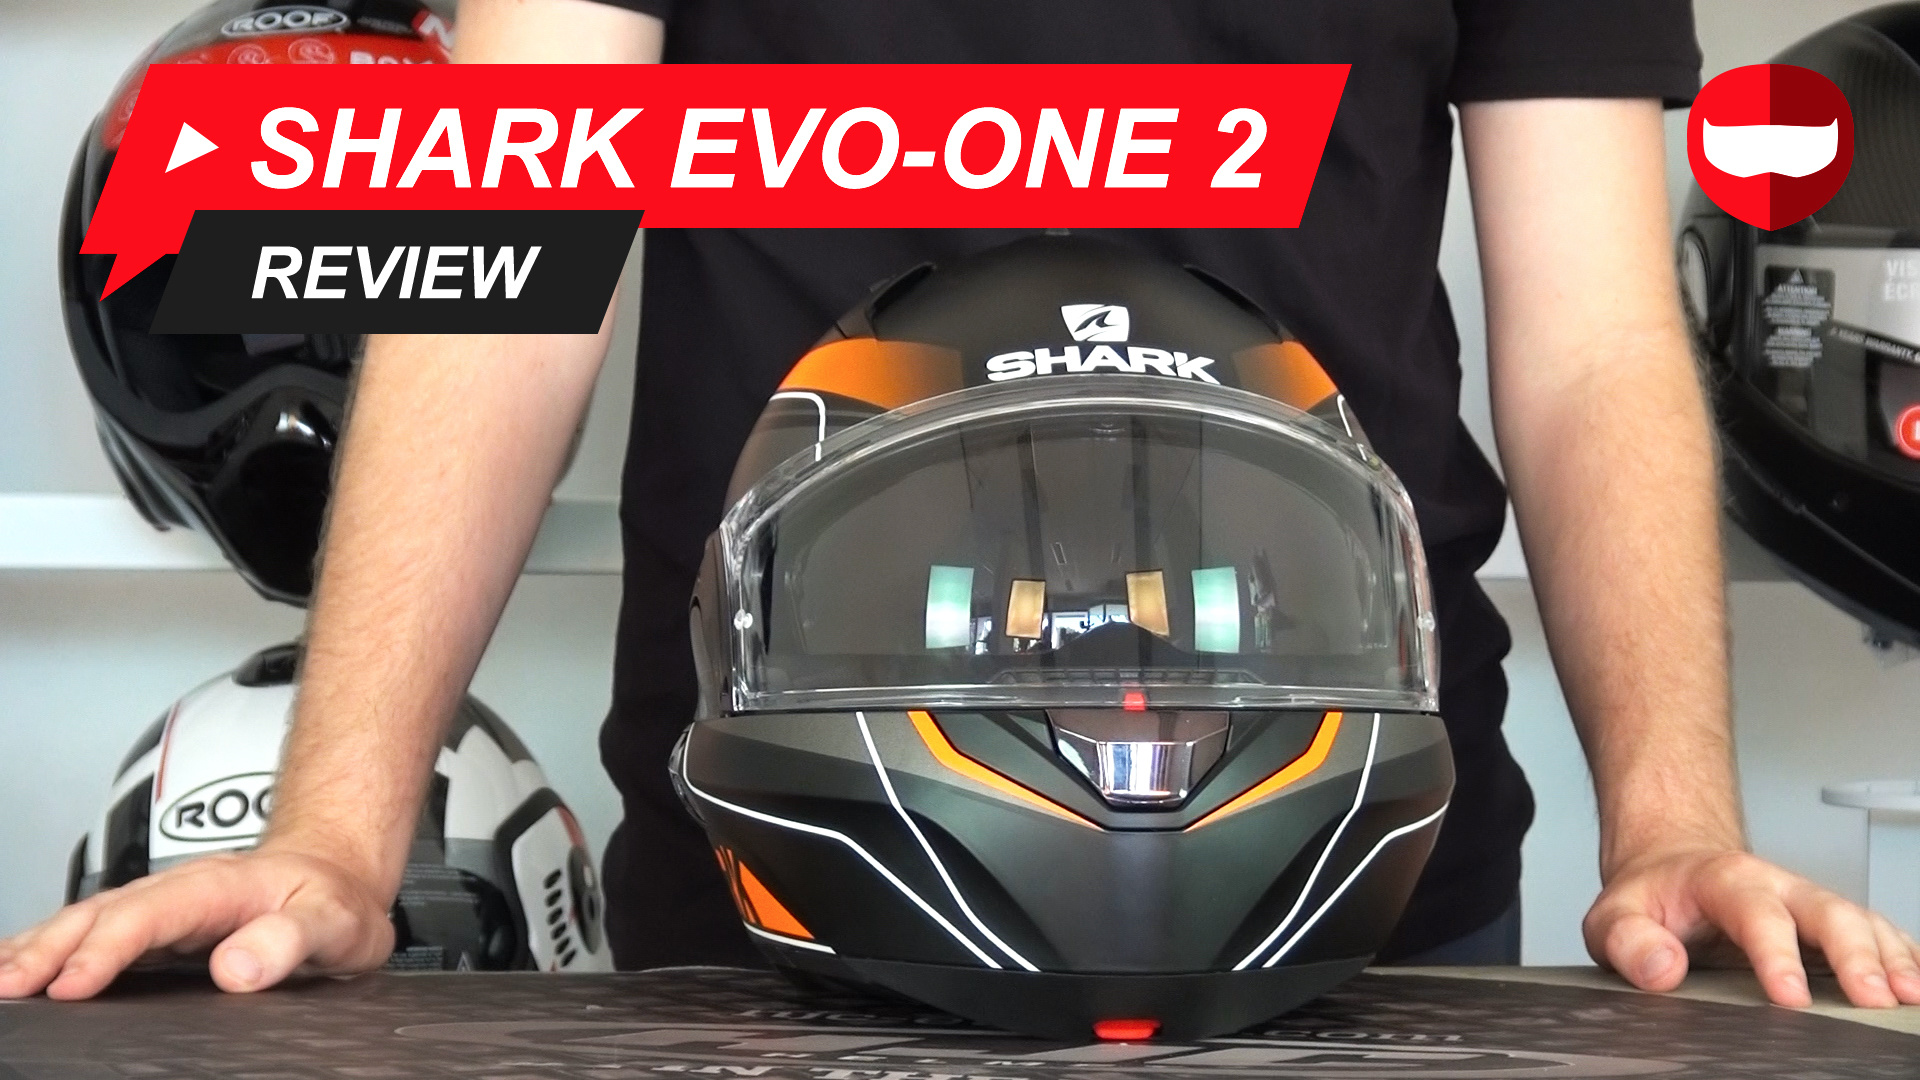 Shark Evo-One 2 Review